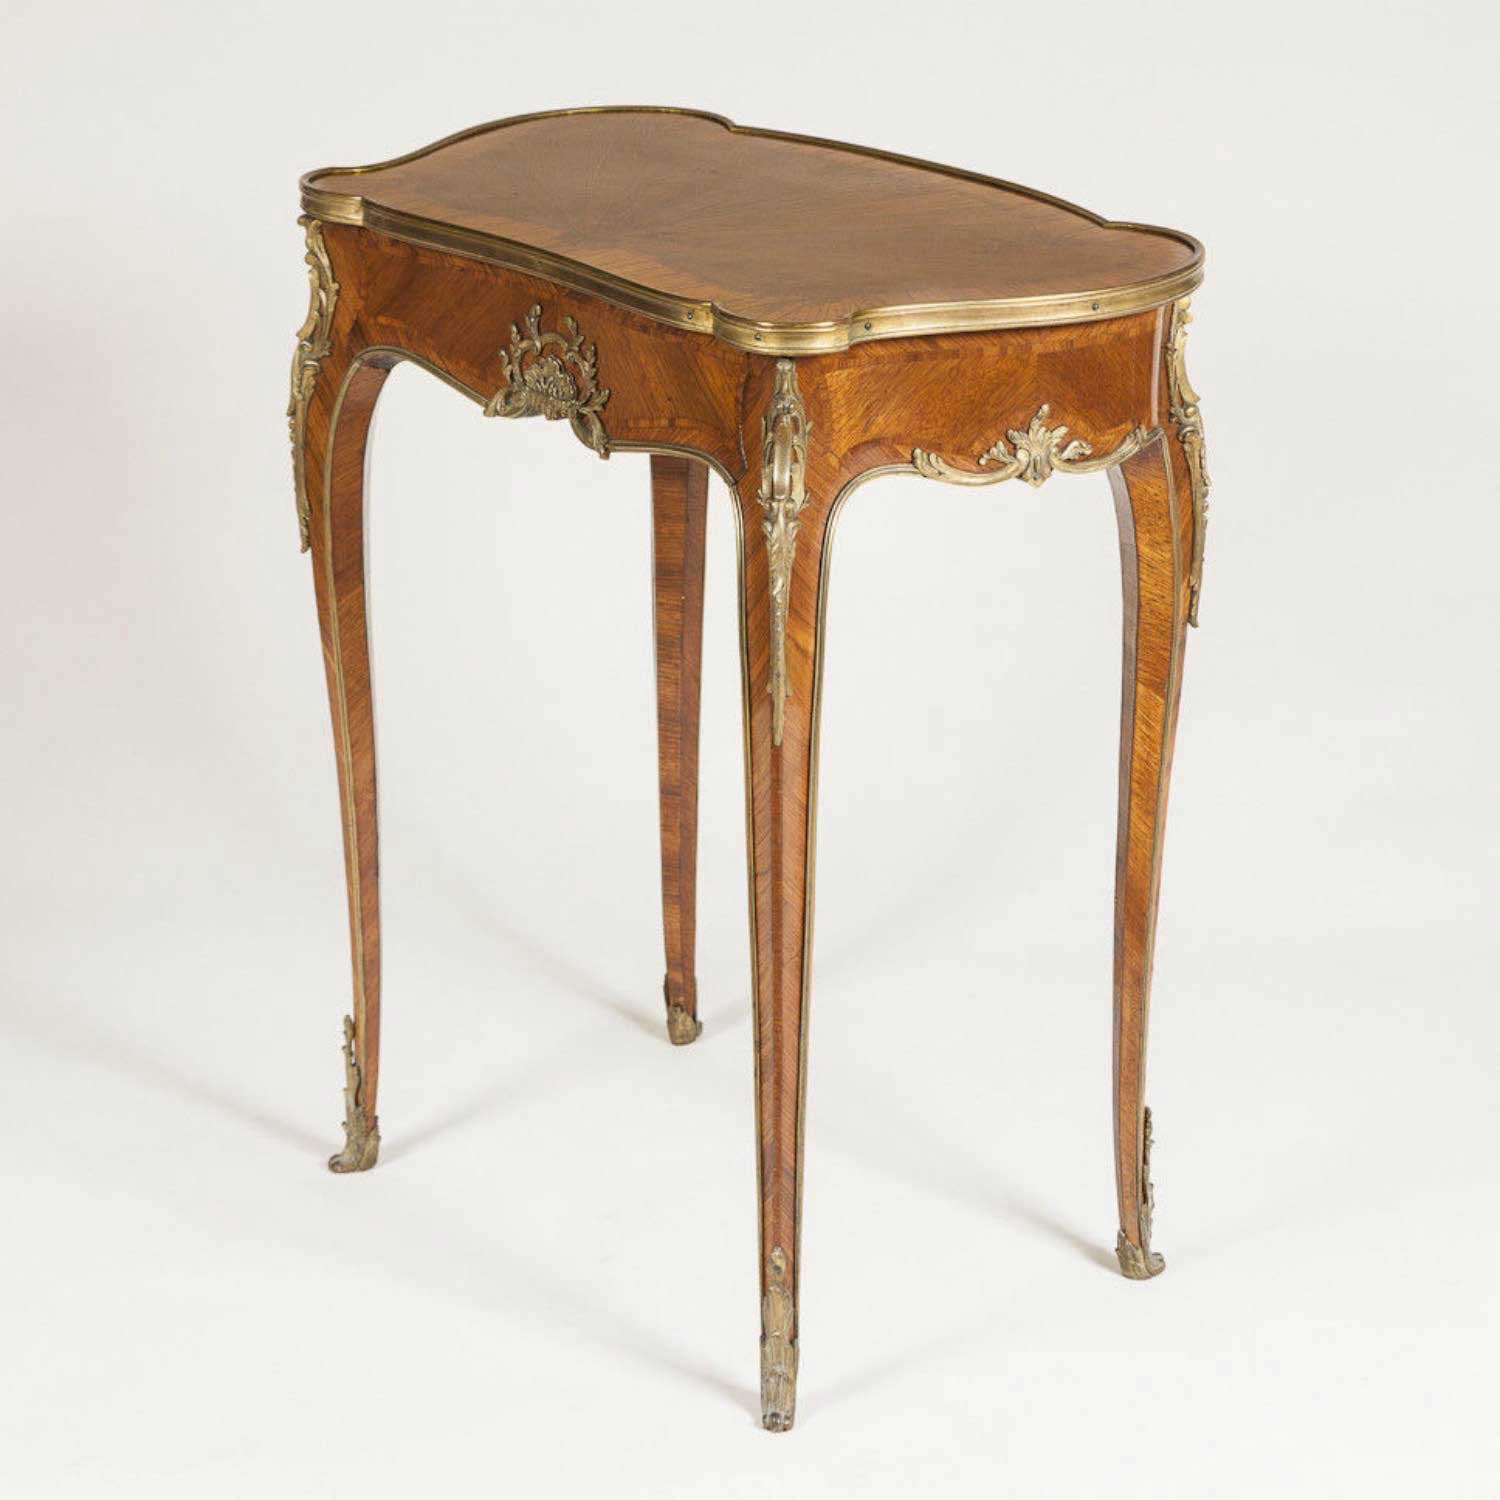 LOUIS XV STYLE MARQUETRY WRITING TABLE